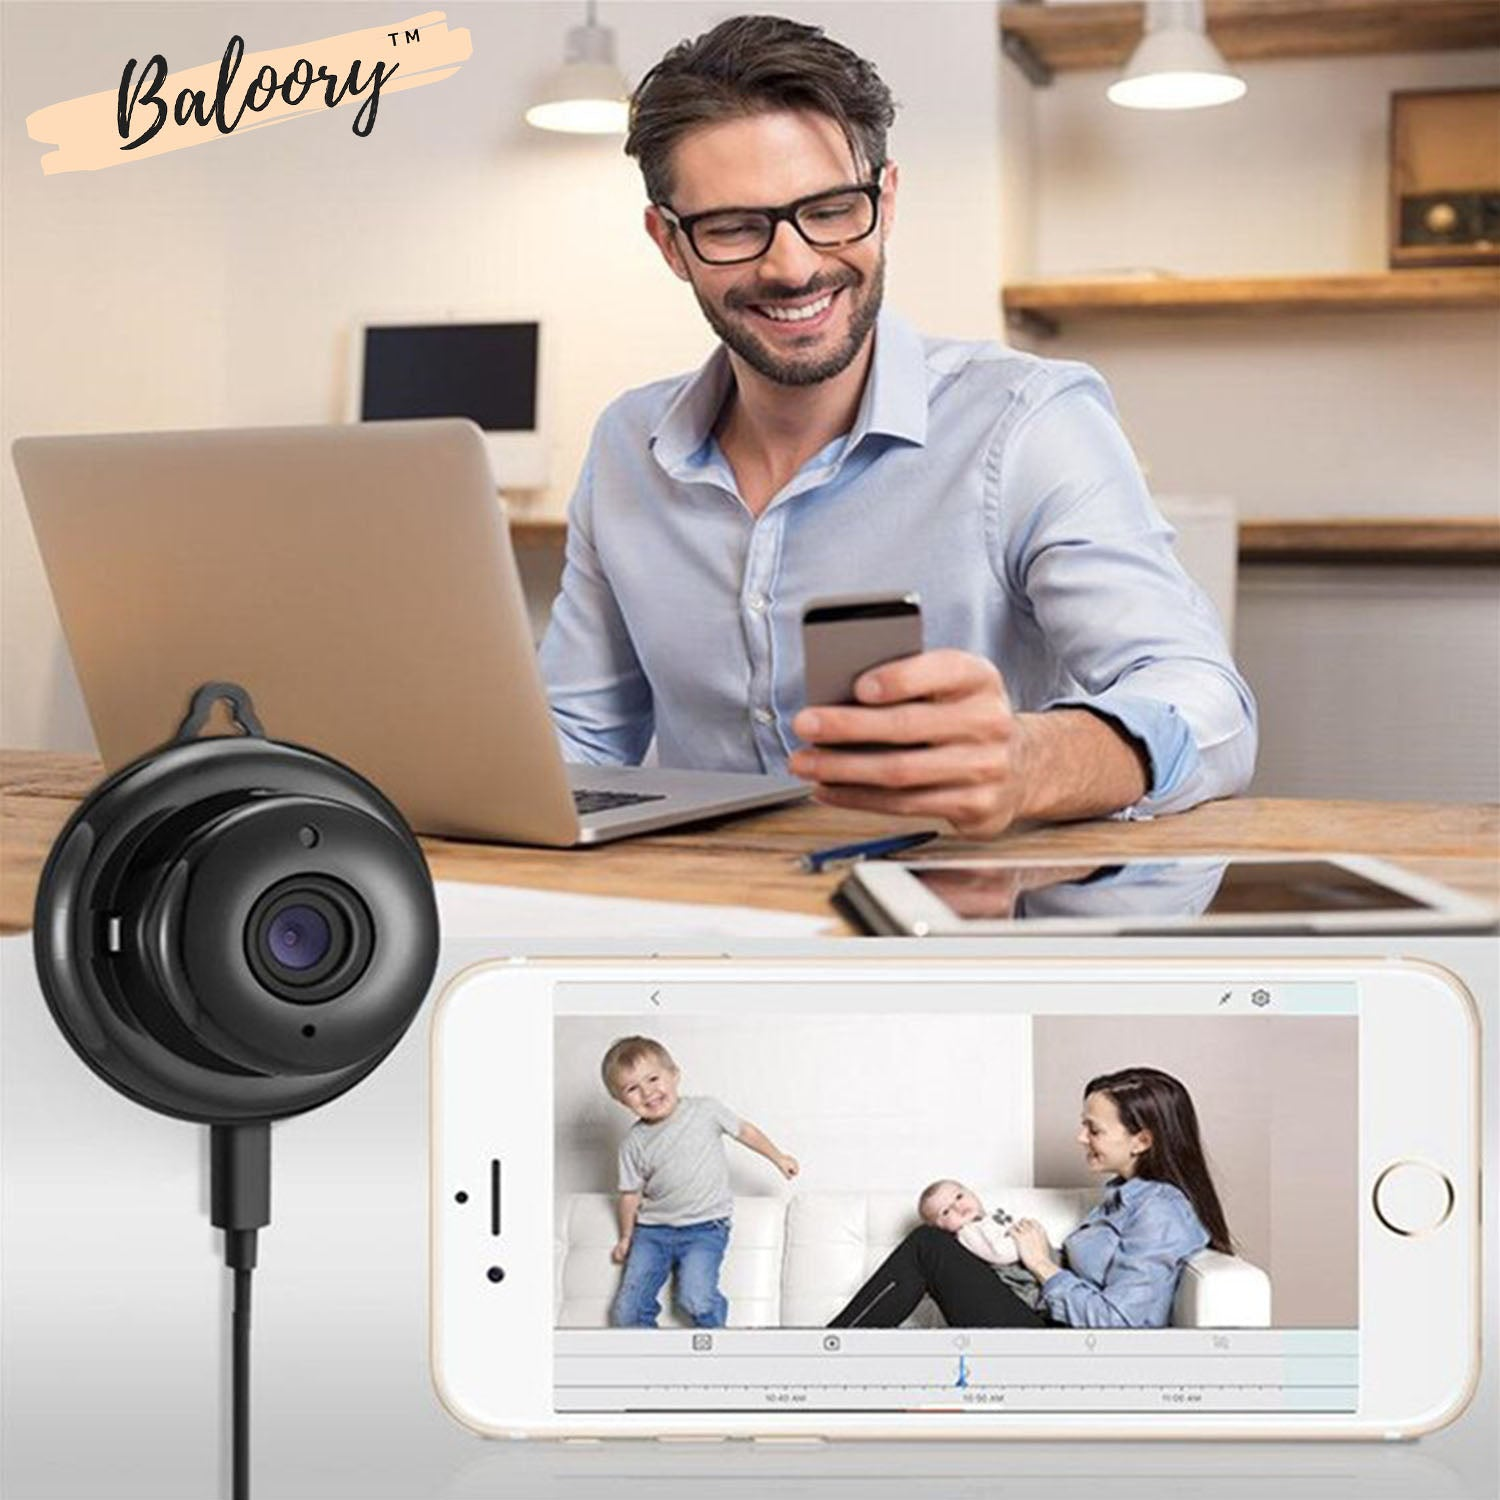 Baloory Wifi Hidden Spy Camera